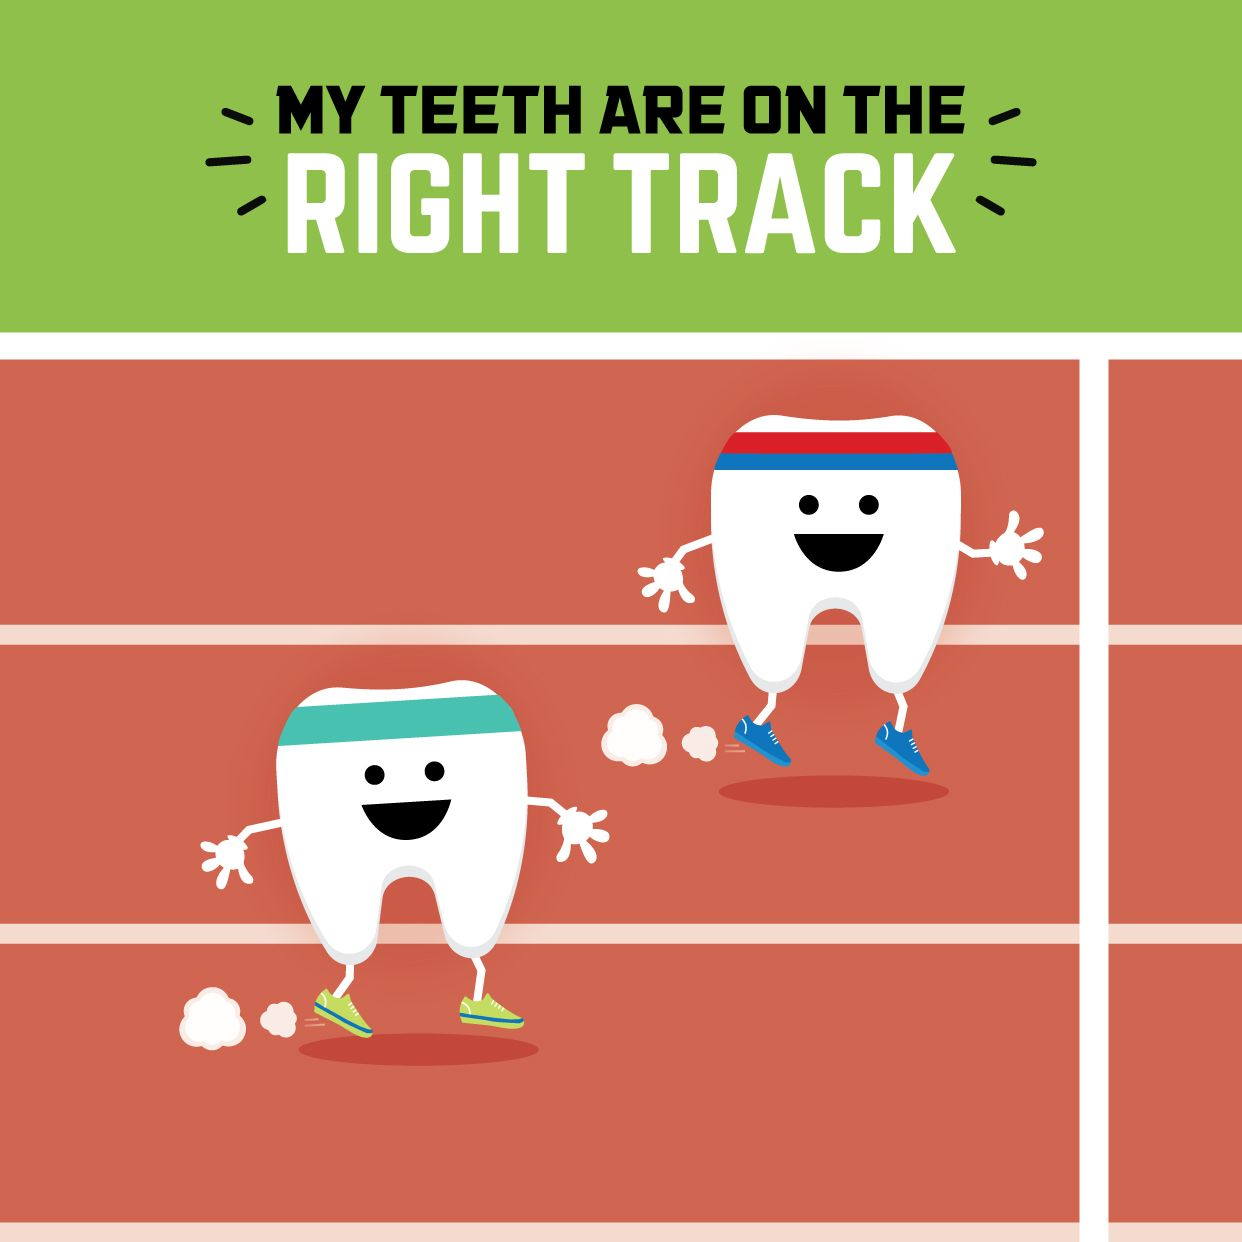 Come see us and well get your teeth on the right track